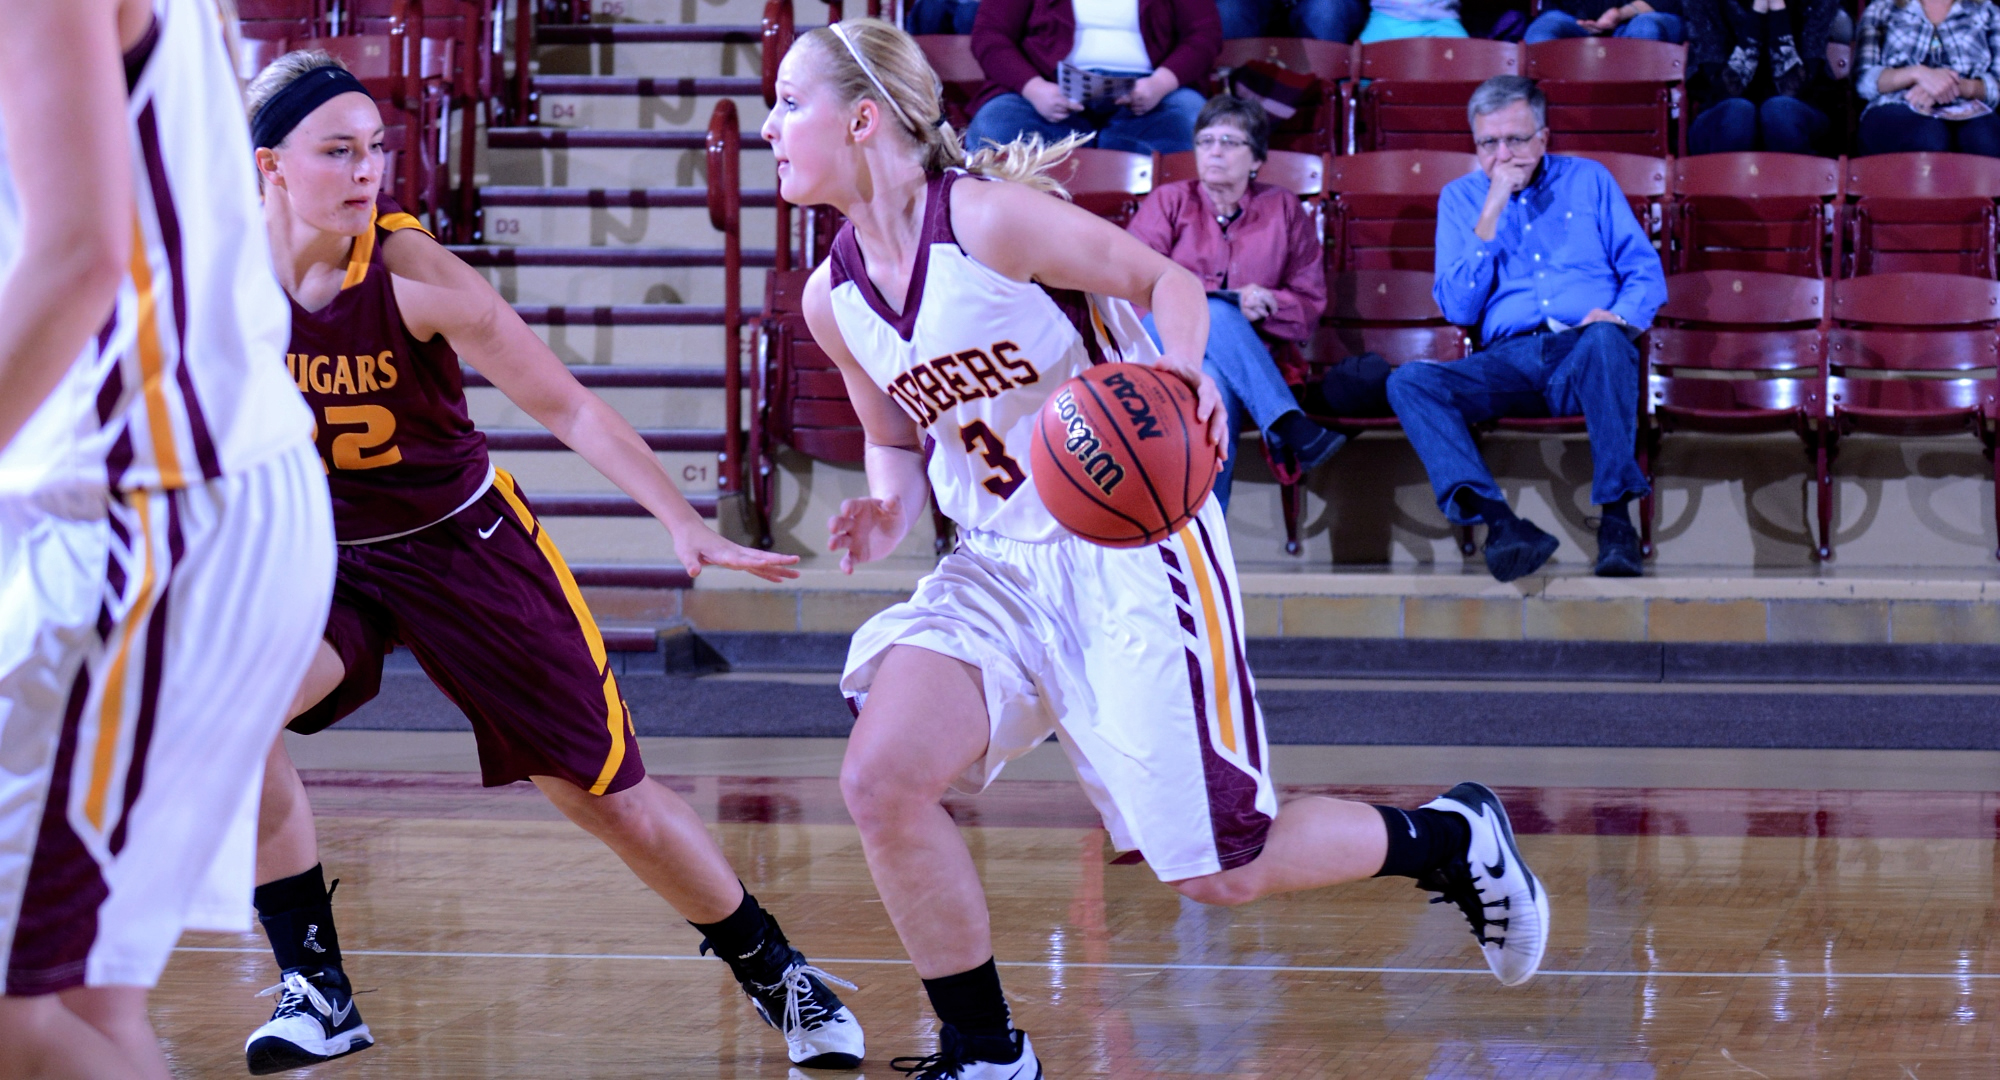 Senior Greta Walsh had a team-high 12 points and recorded three steals in the Cobbers' season-opening win over Minn.-Morris.